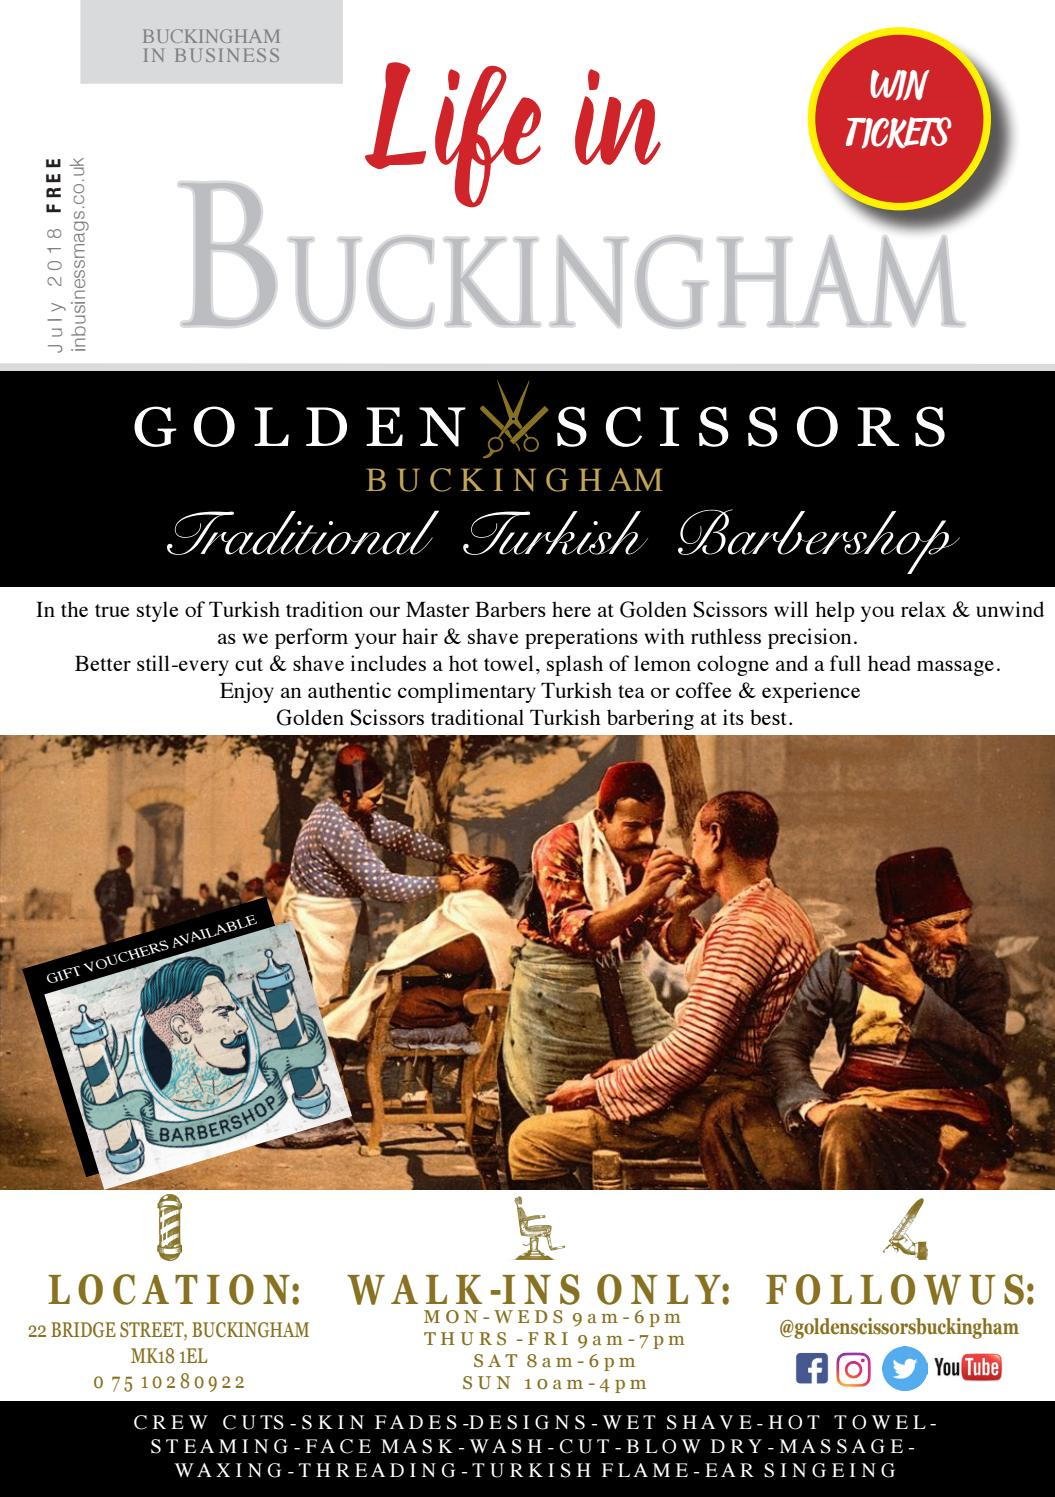 Life in Buckingham July 2018 issue by Best Area Magazines Ltd - issuu